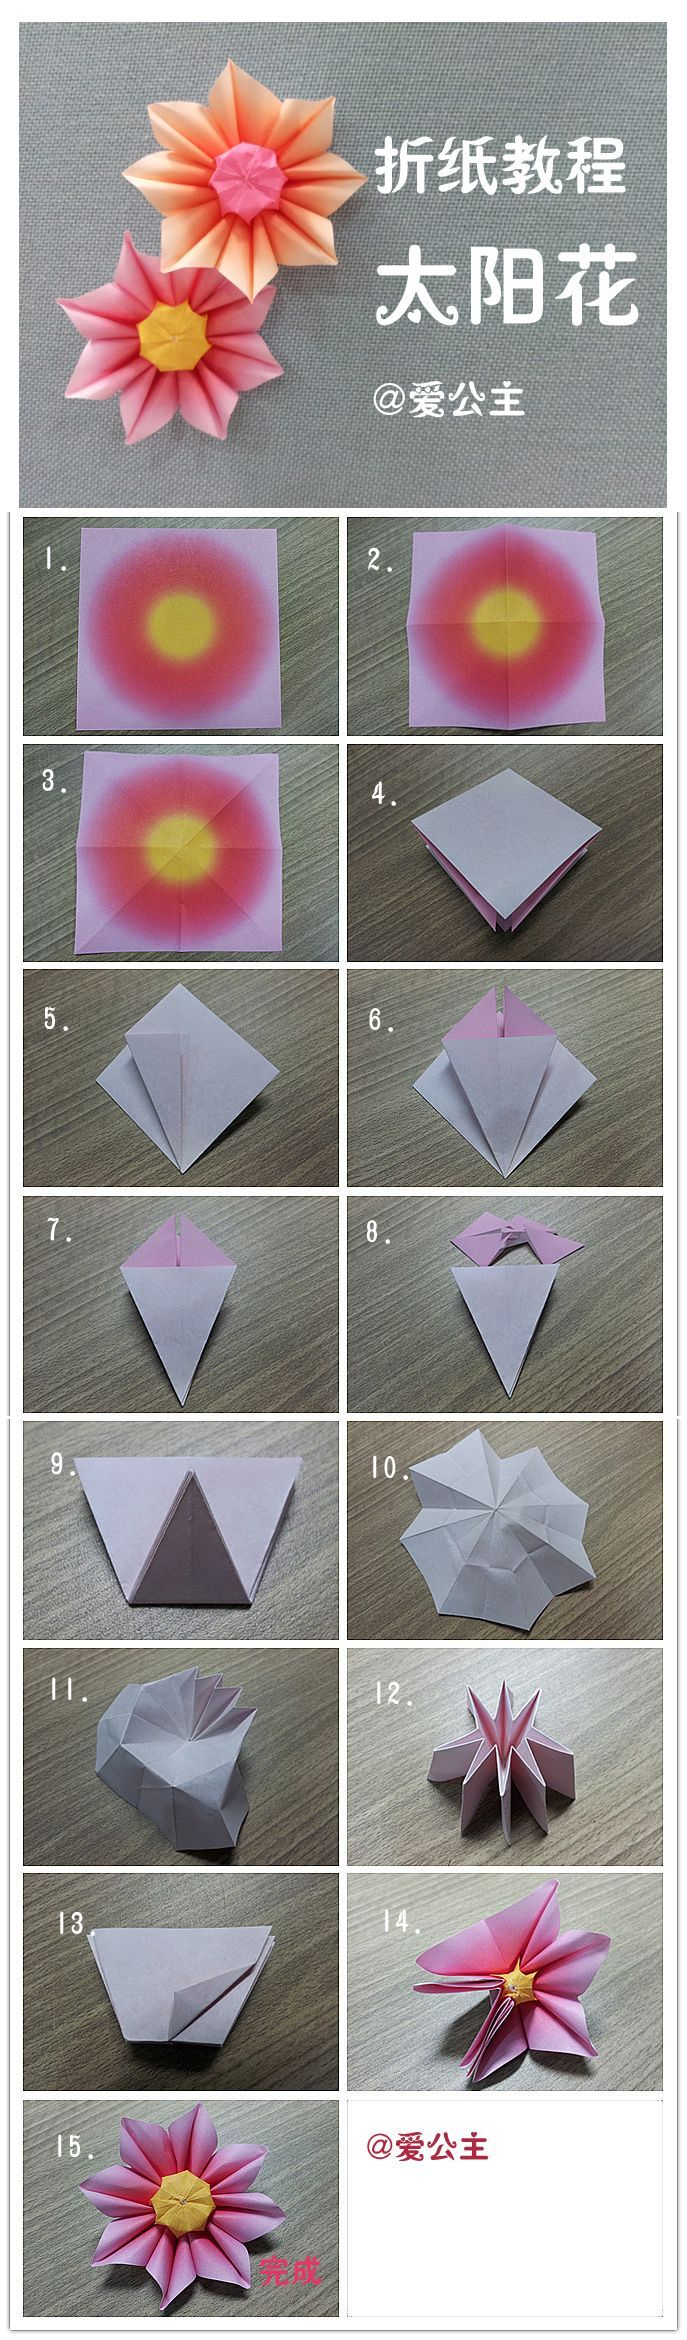 1000 Images About Origami On Pinterest Origami Paper Origami